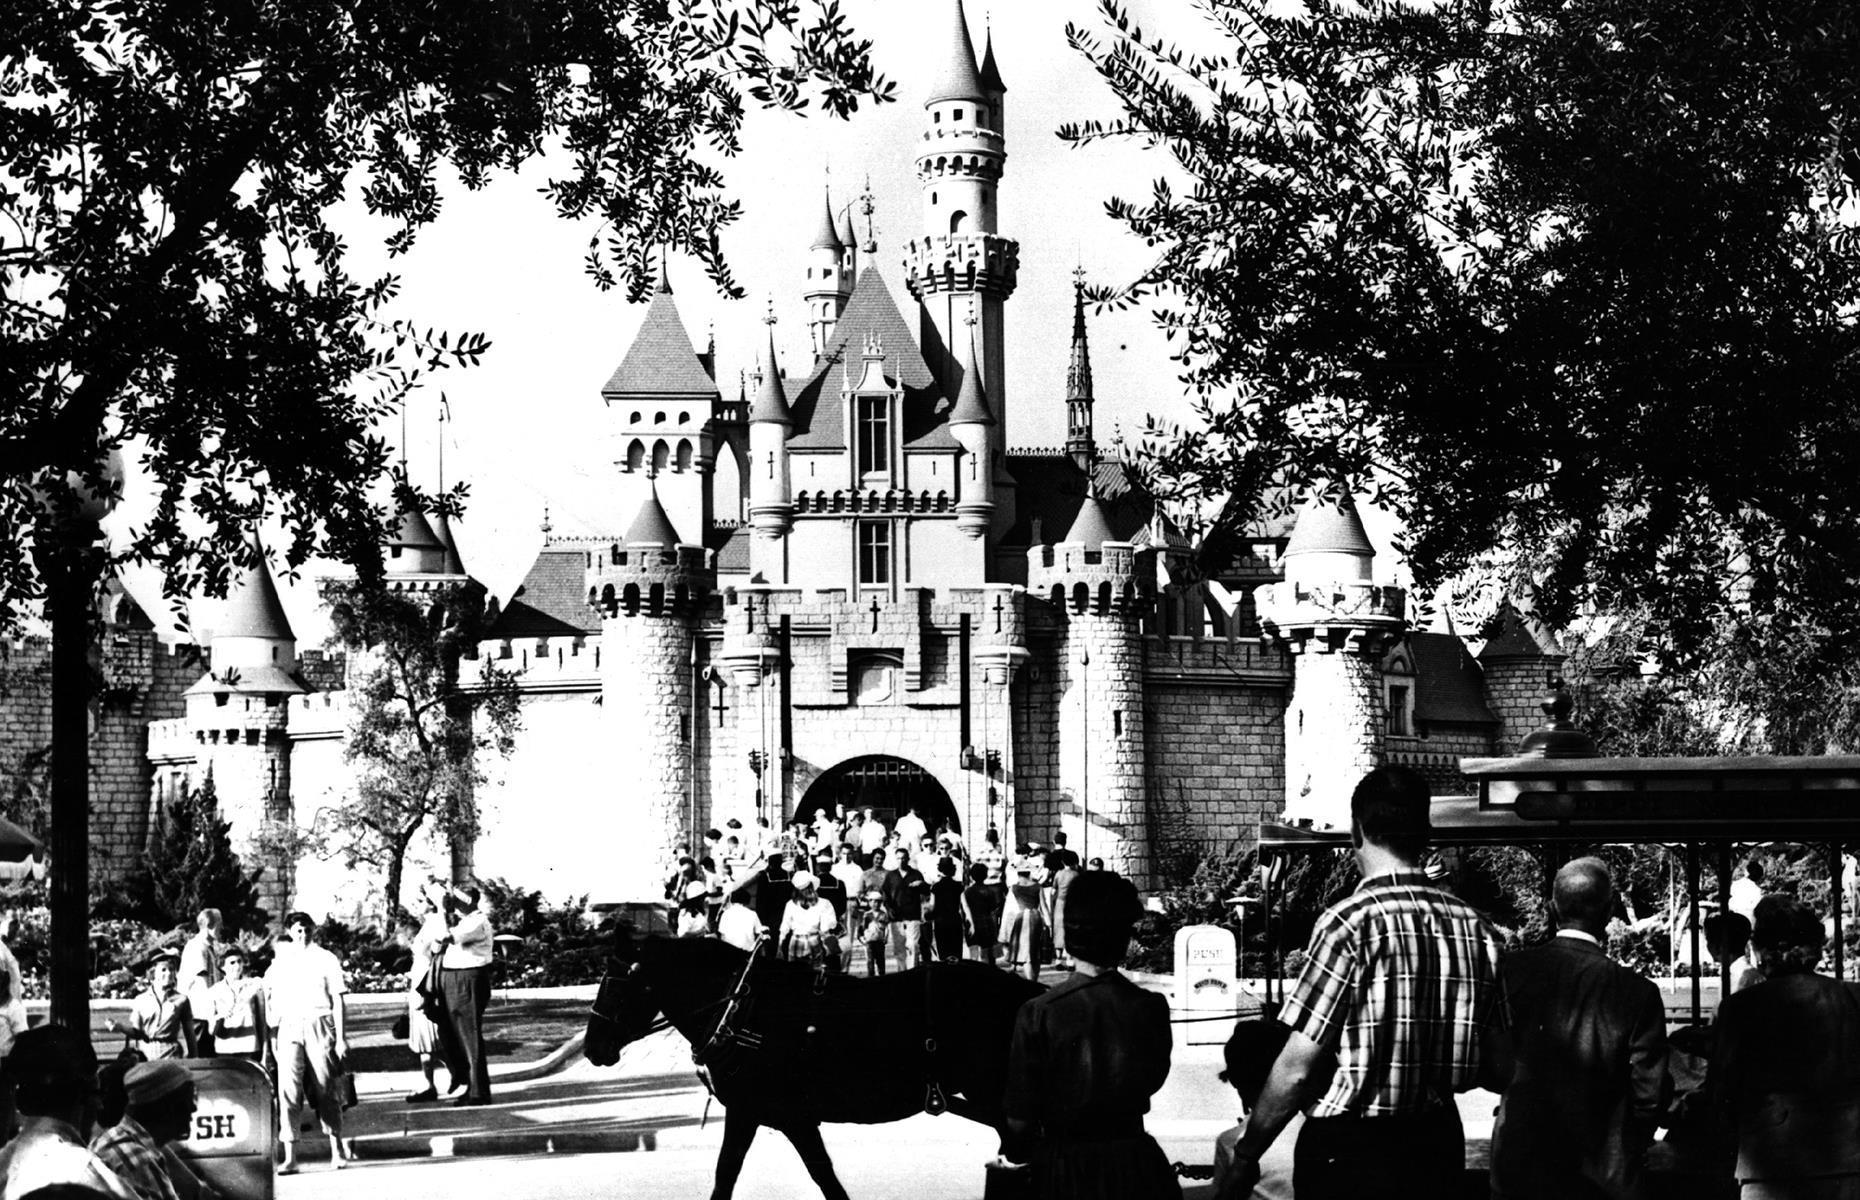 Slide 31 of 35: Perhaps no theme park image is more iconic today than Disneyland California's Sleeping Beauty Castle – and she looked just as beautiful in the 1960s, when this snap was taken. Created in the image of Germany's Neuschwanstein Castle, the structure was one of Disneyland's (now Disneyland Park) earliest attractions. Here park-goers drink in the castle's impressive towers and turrets.